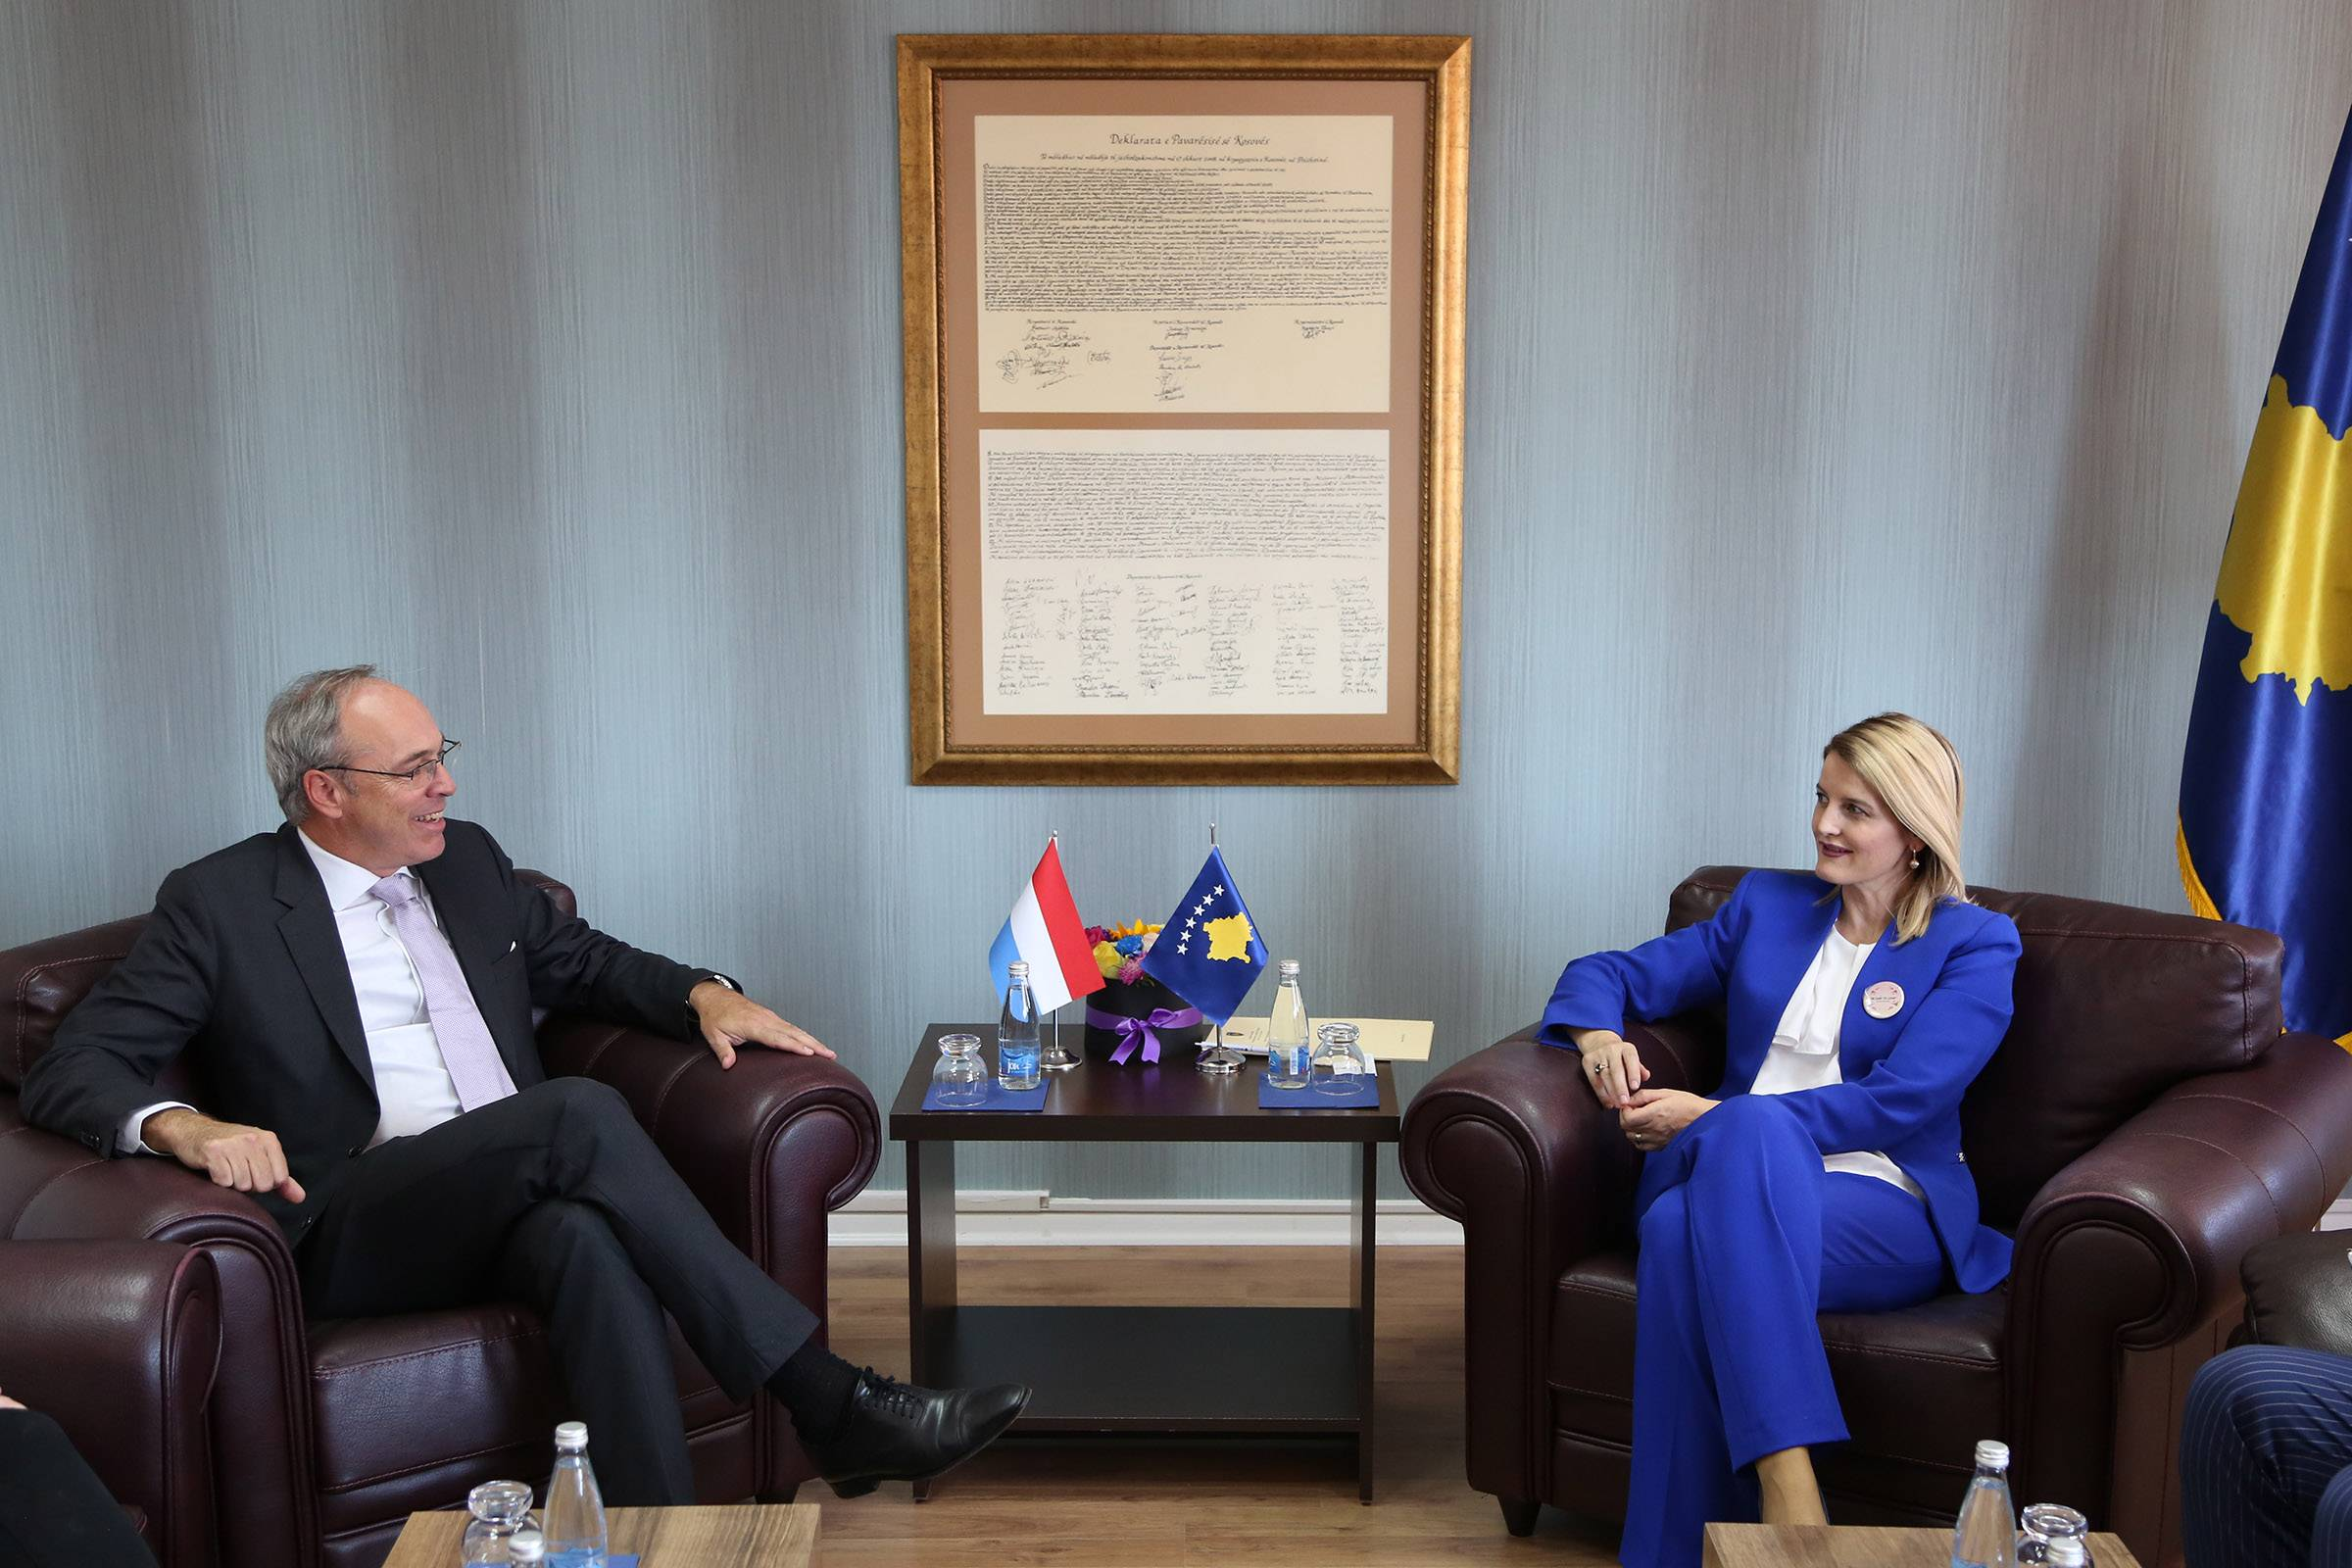 Minister Hoxha in a meeting with Ambassador Schmit: We look forward to Luxembourg's support for visa liberalization